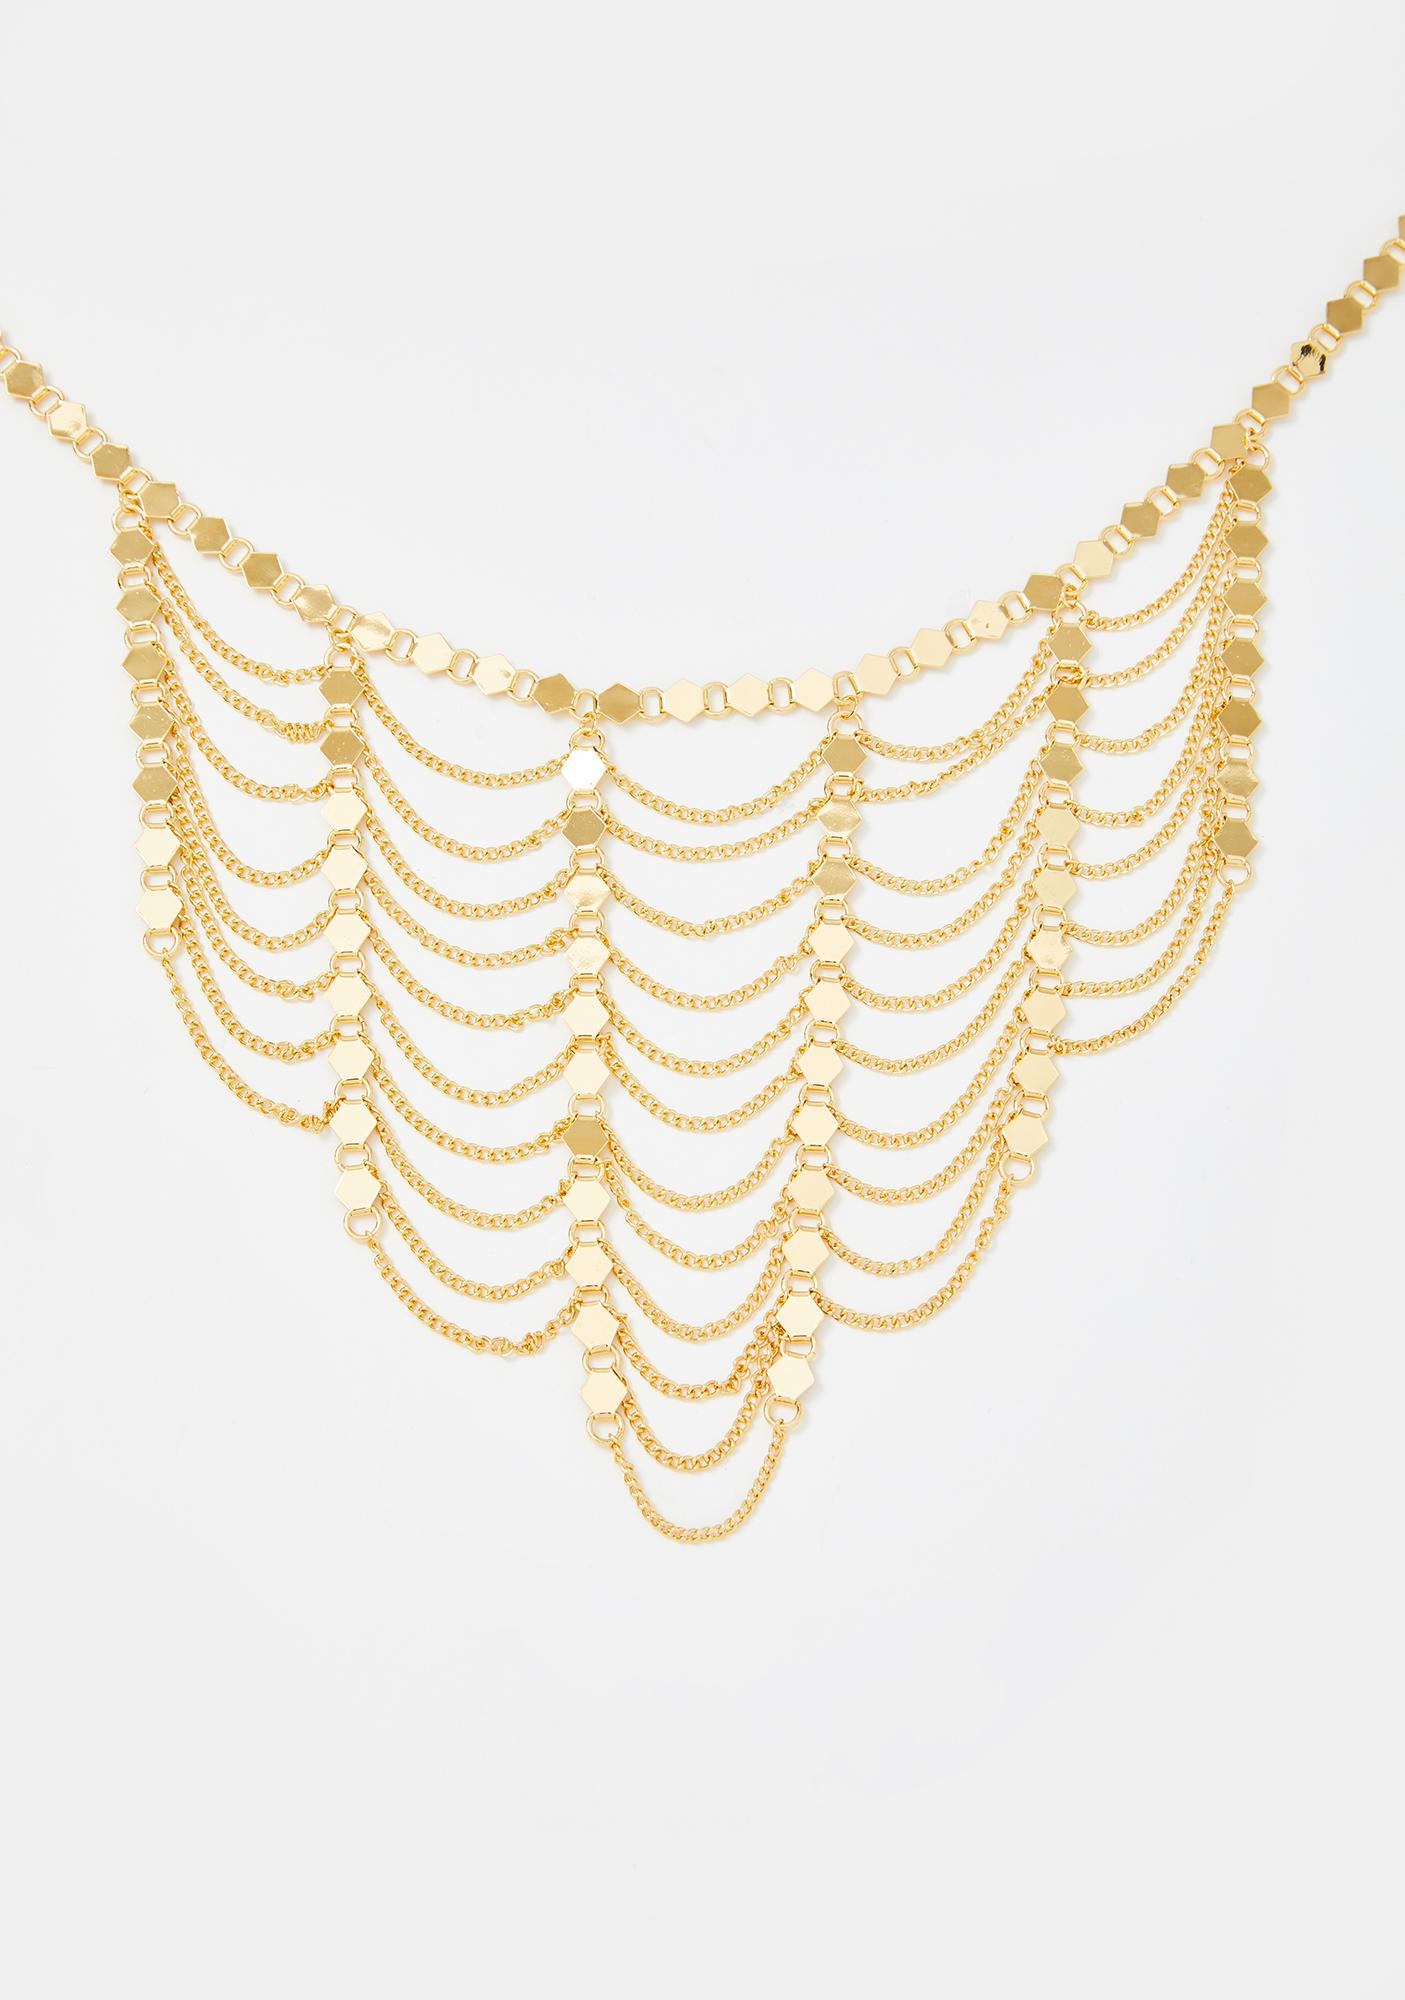 Undercover Royalty Layered Necklace